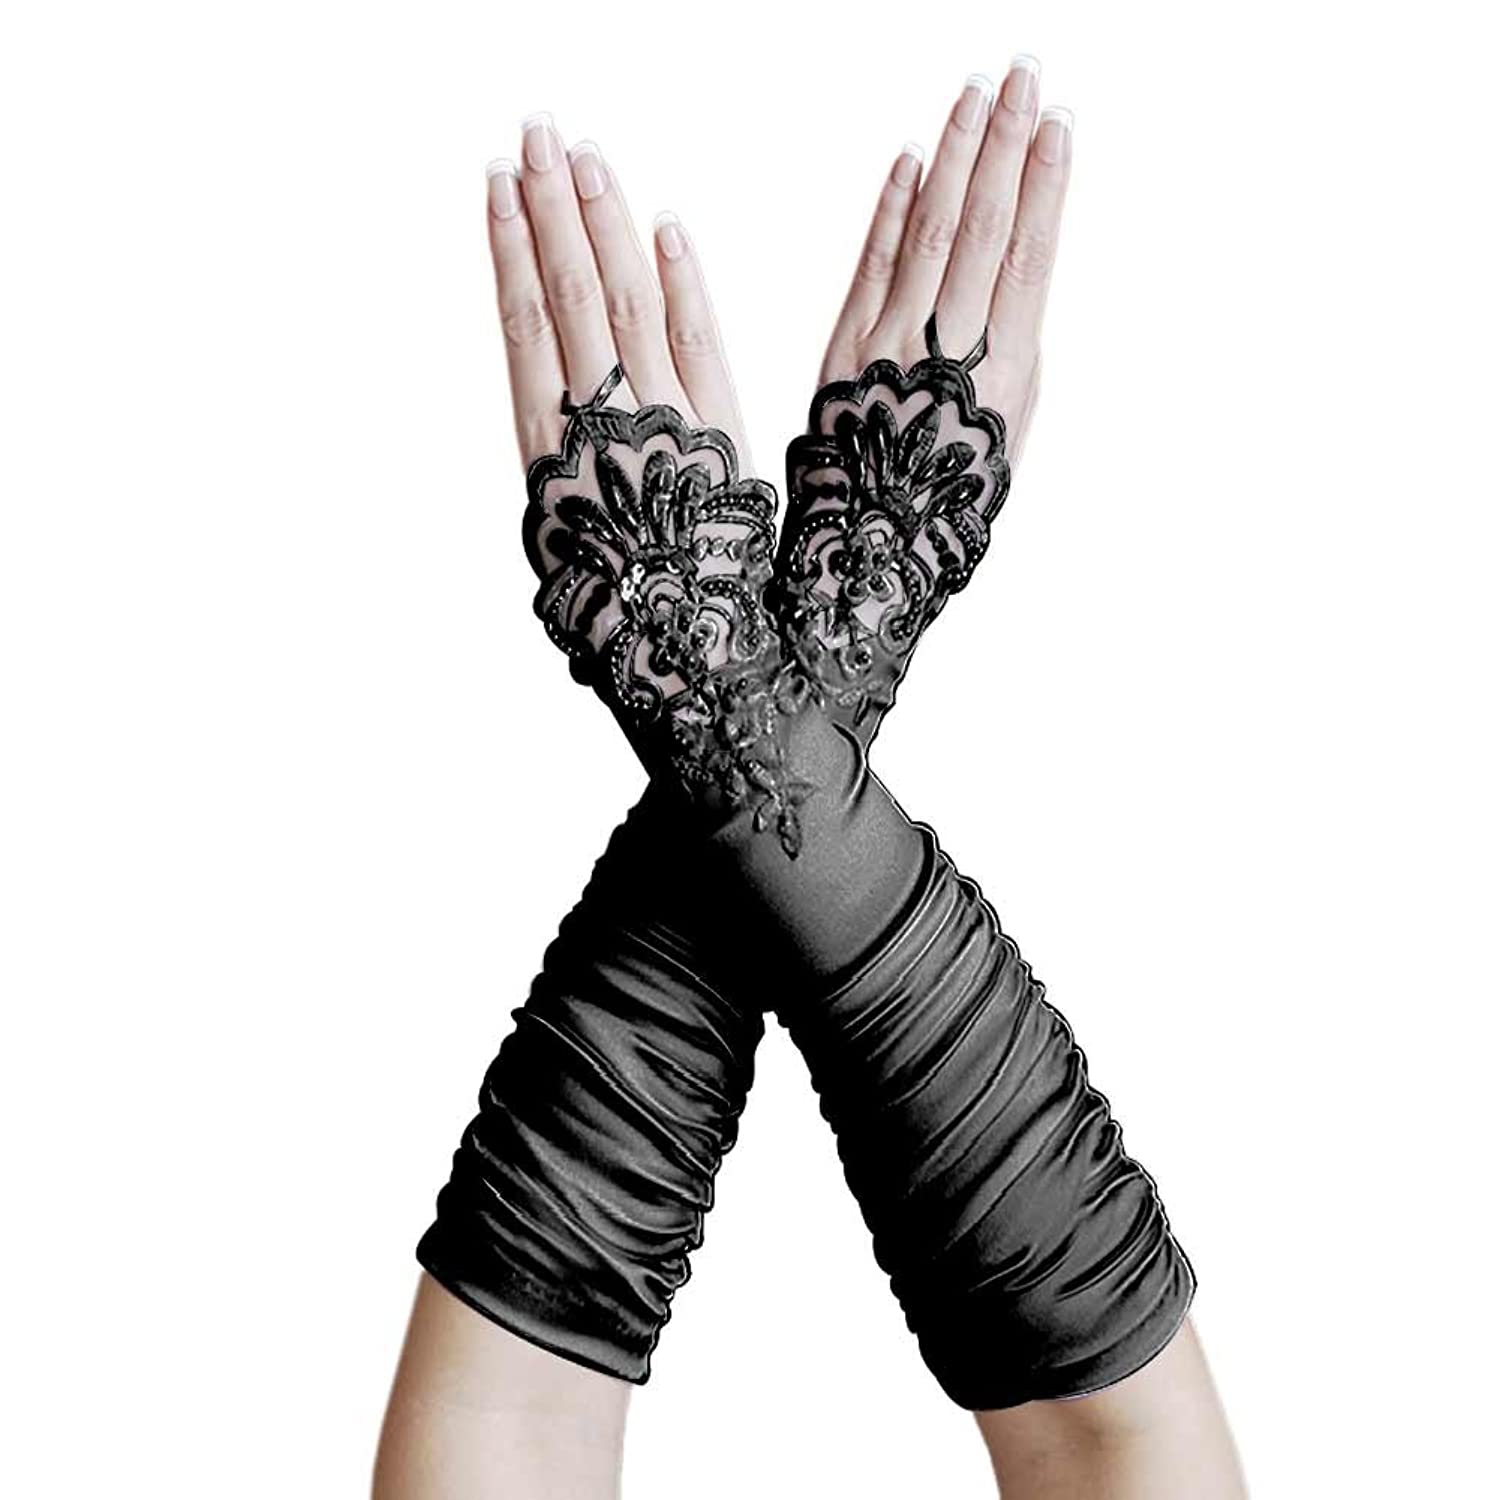 Fingerless gloves amazon - Zaza Bridal Gathered Satin Fingerless Gloves W Floral Embroidery Lace Sequins Black At Amazon Women S Clothing Store Special Occasion Gloves